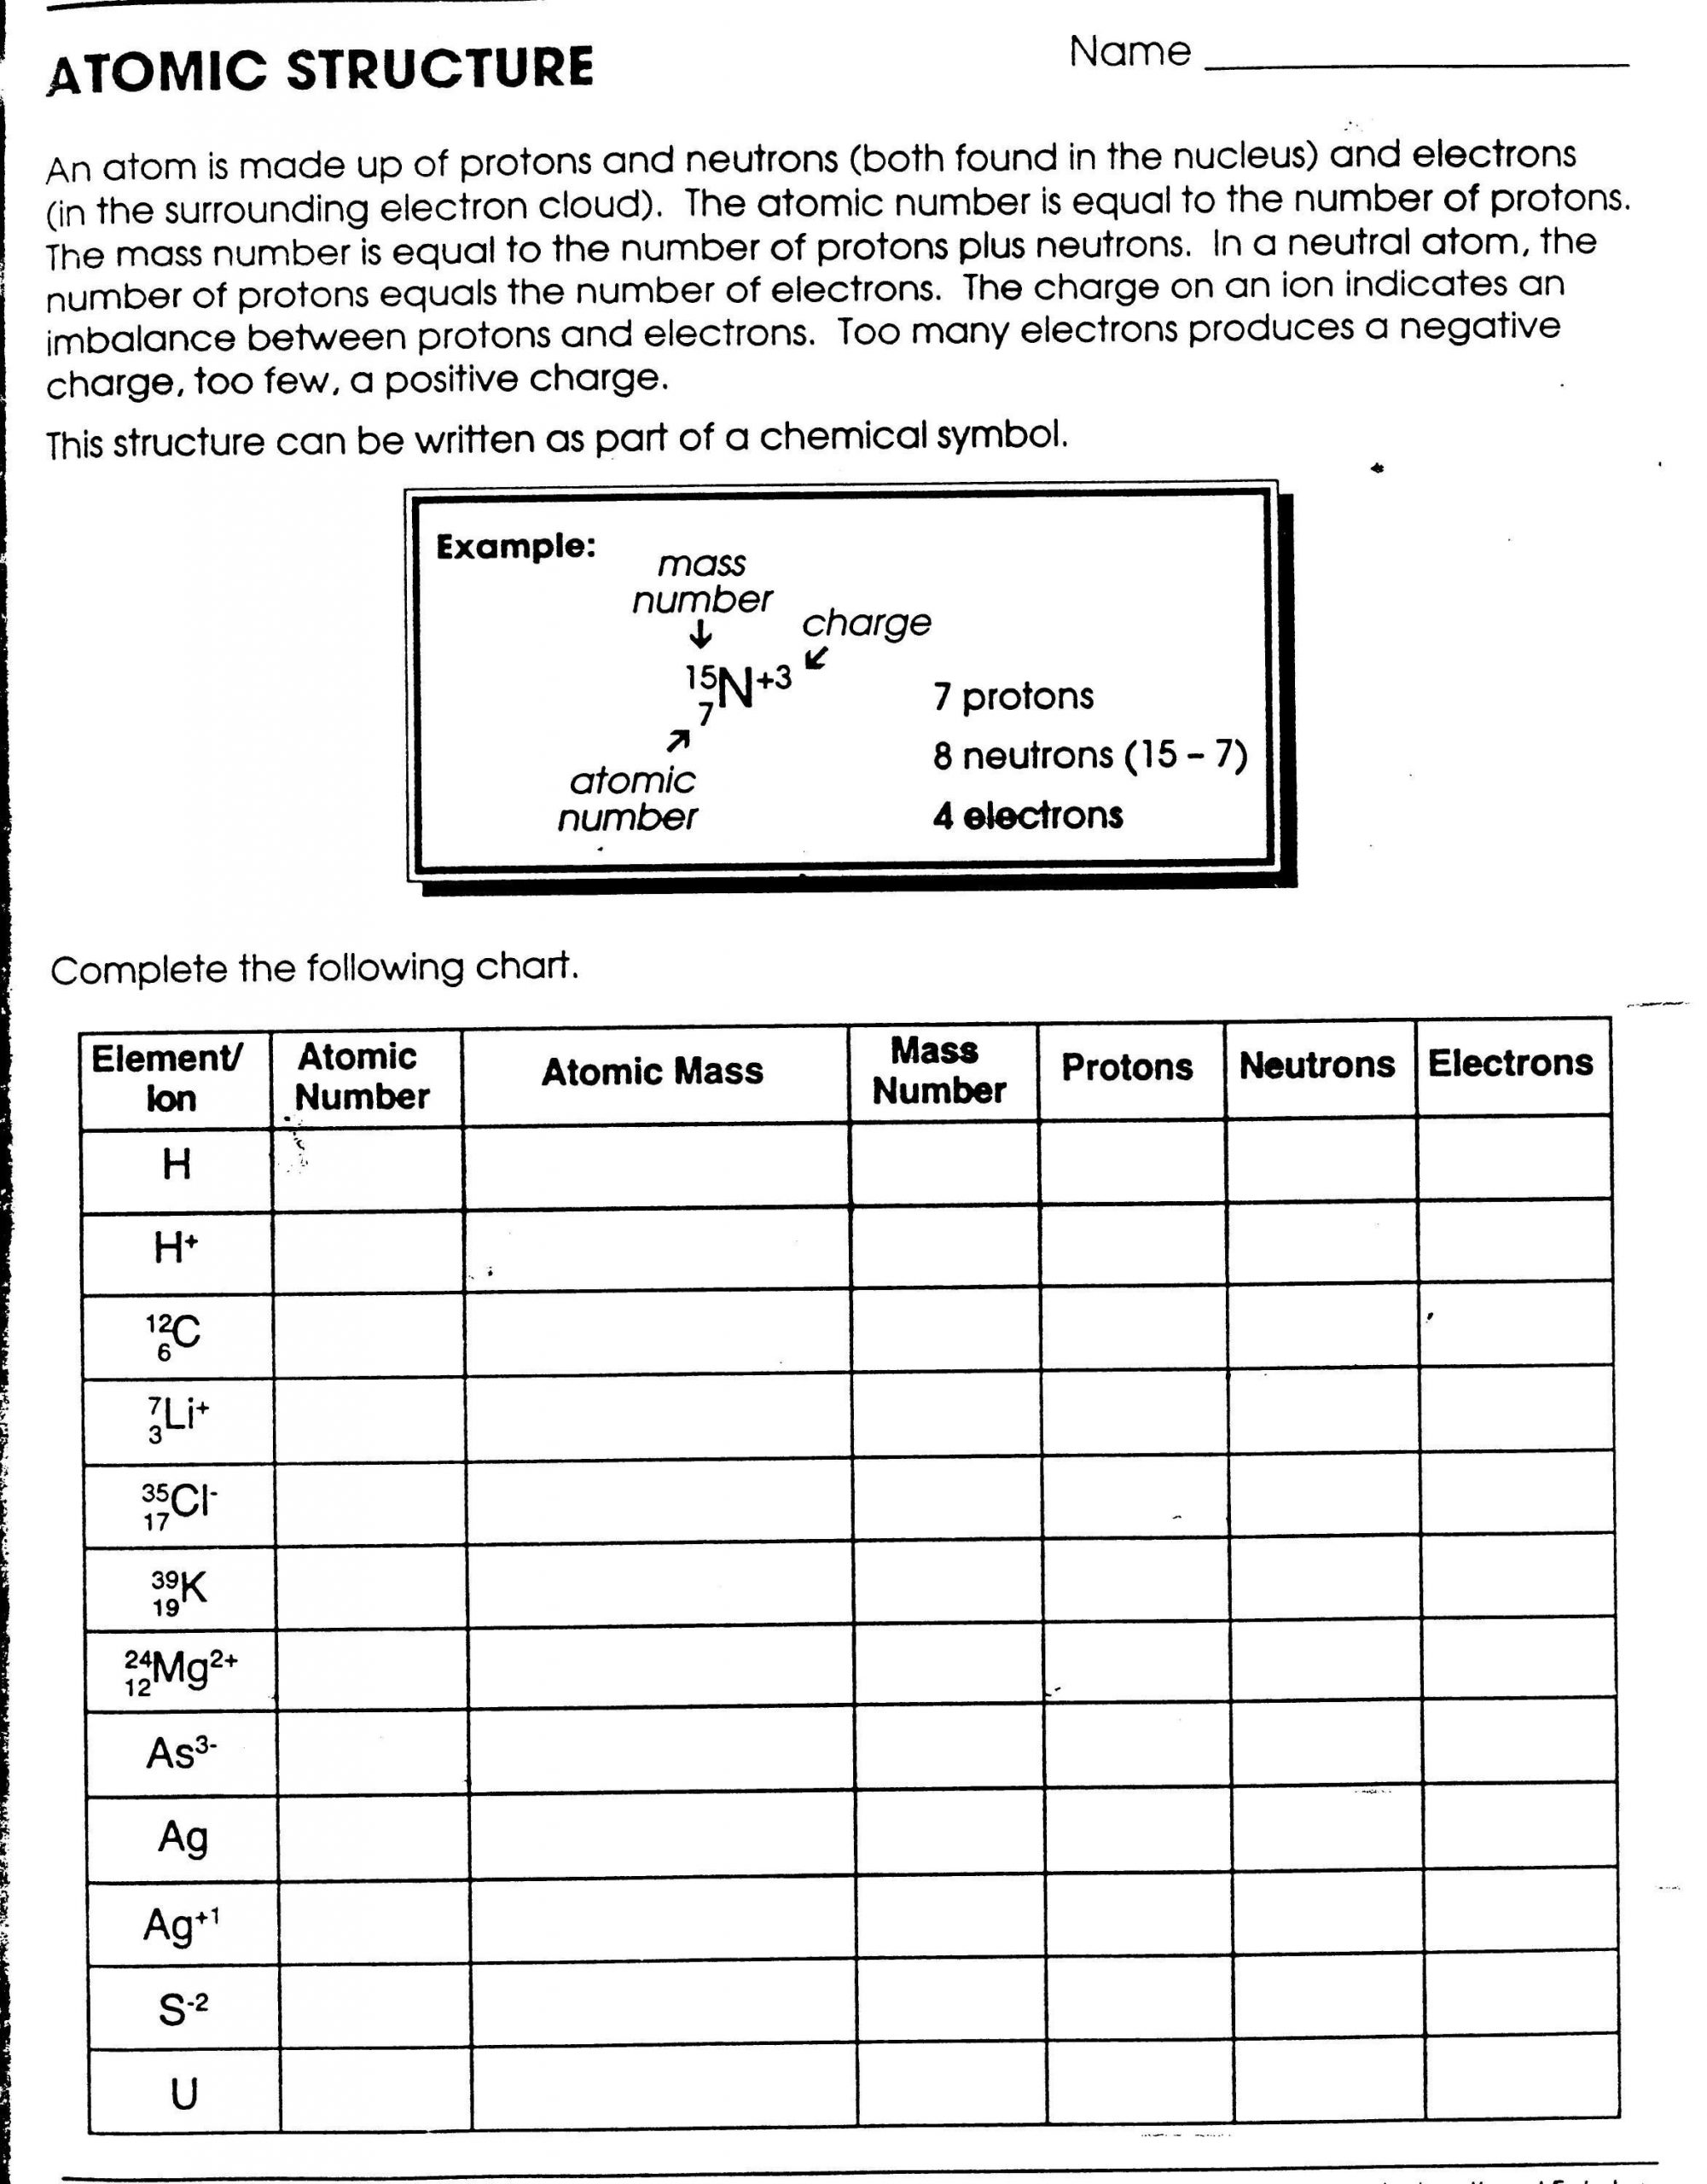 Chemistry atomic Structure Worksheet Printables atomic Structure Worksheet Gozoneguide